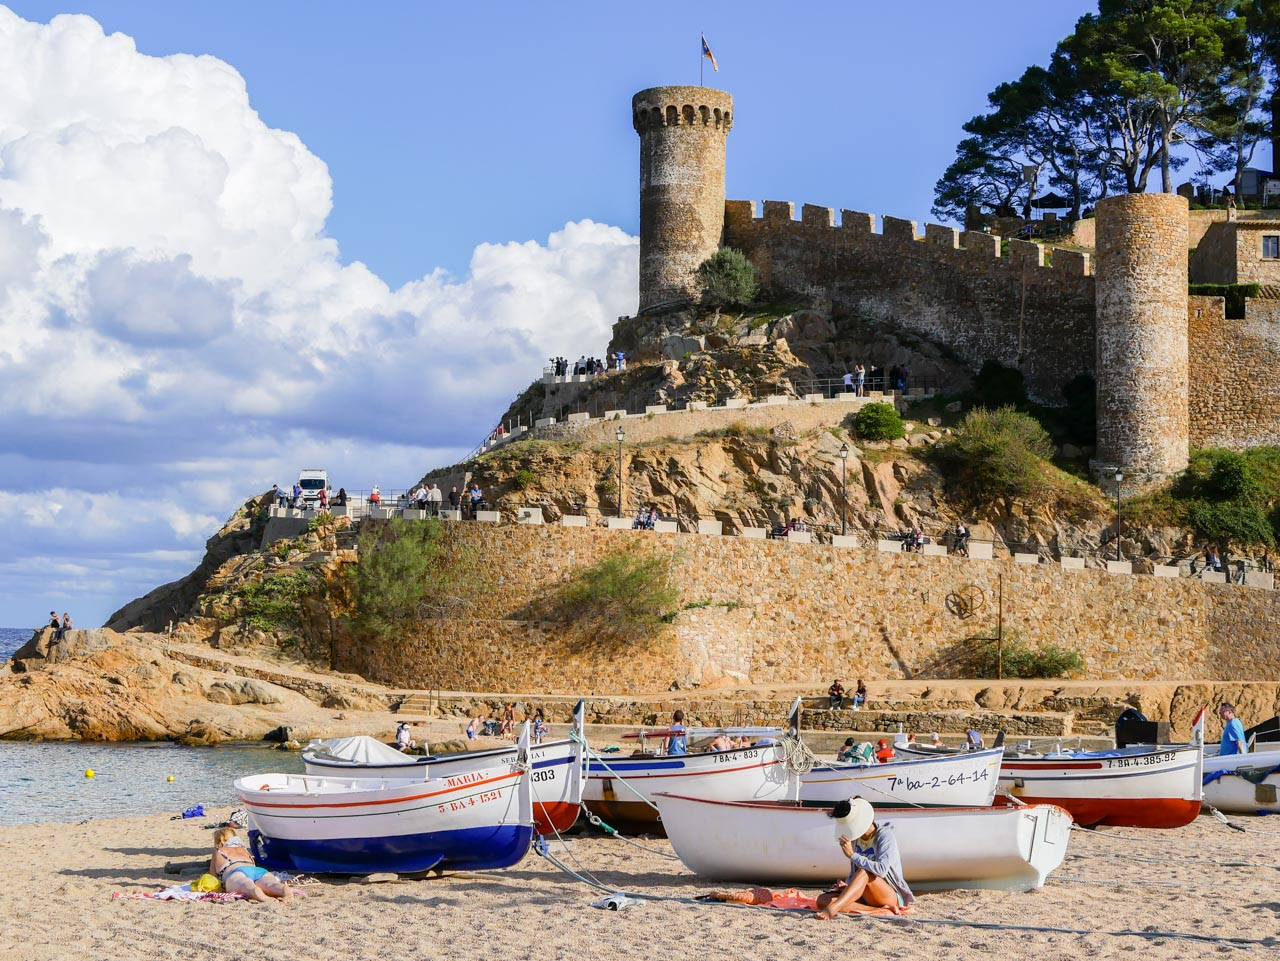 Week-end sur la Costa Brava à Tossa de Mar